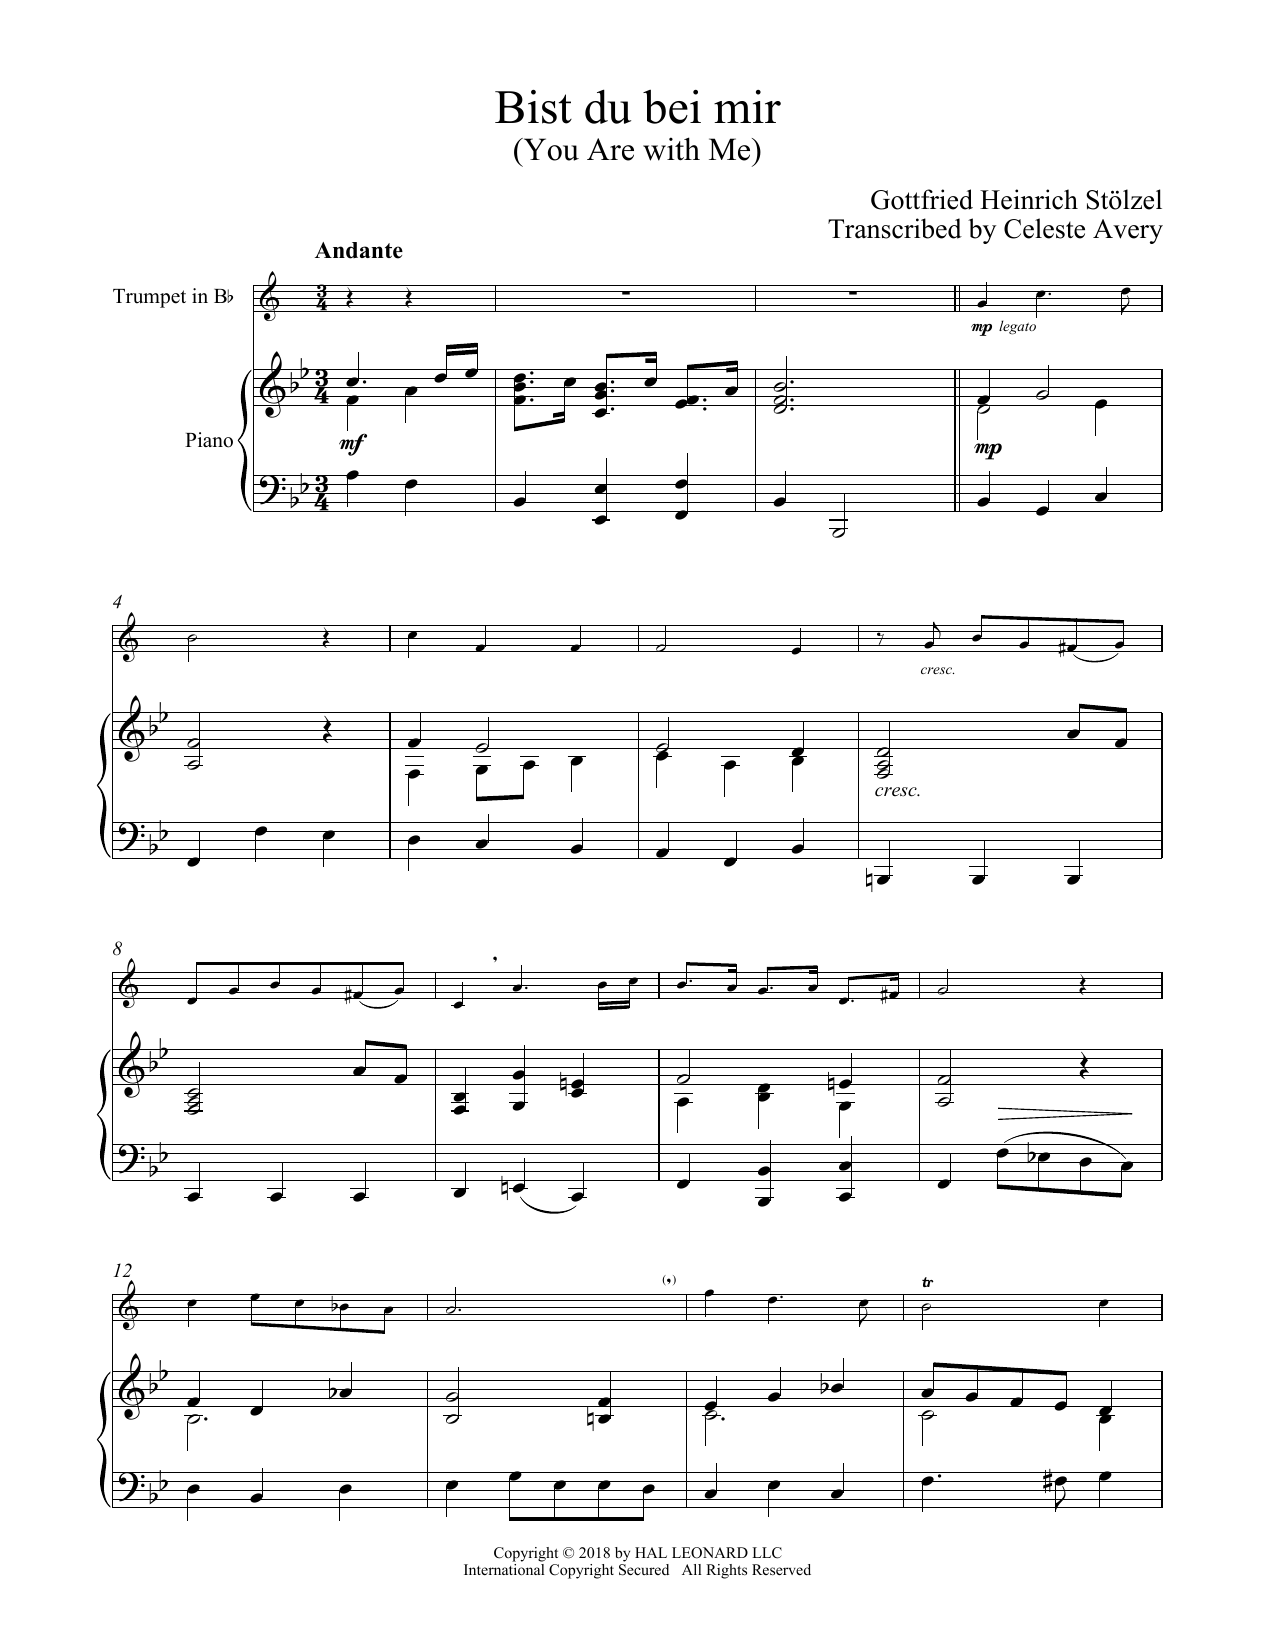 Johann Sebastian Bach Bist Du Bei Mir You Are With Me Sheet Music Notes Chords Download Printable Trumpet And Piano Sku 409276